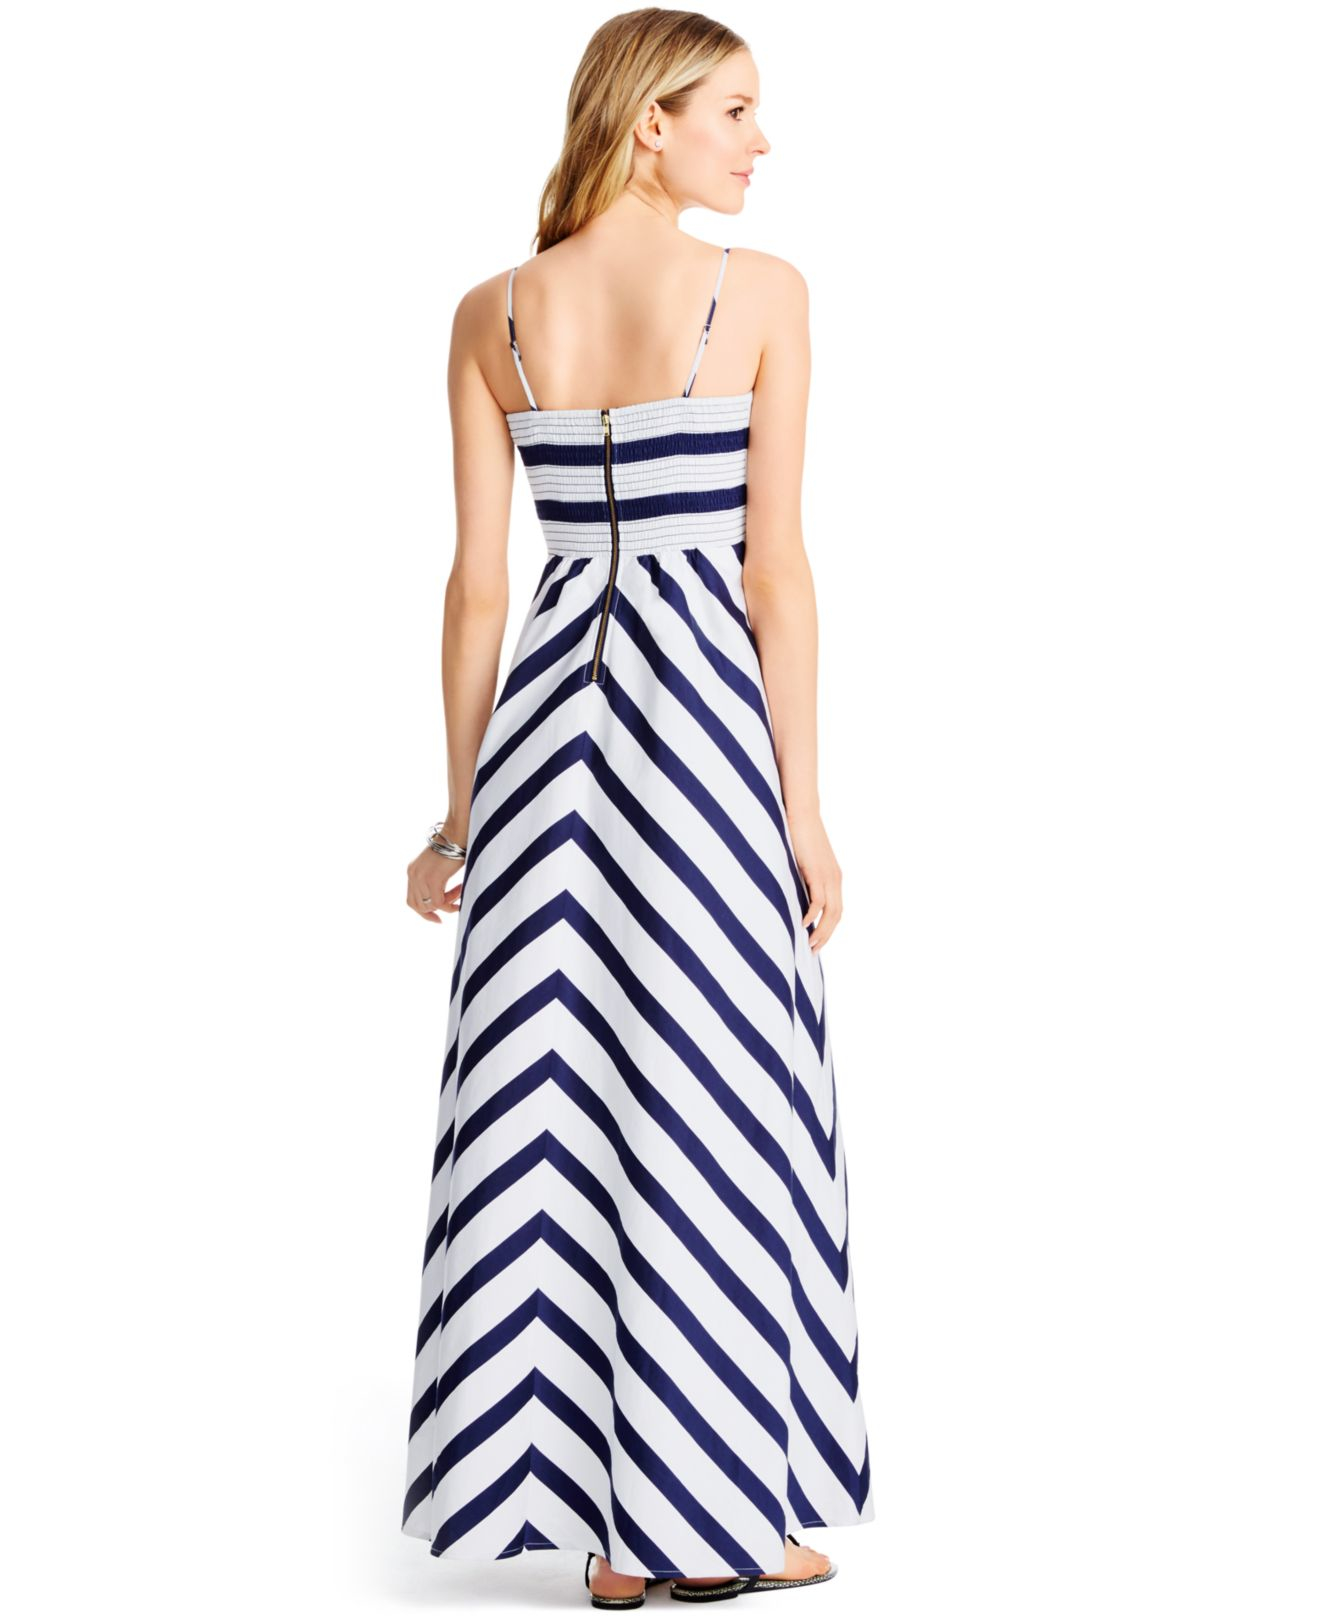 Jessica Simpson White Maxi Dress